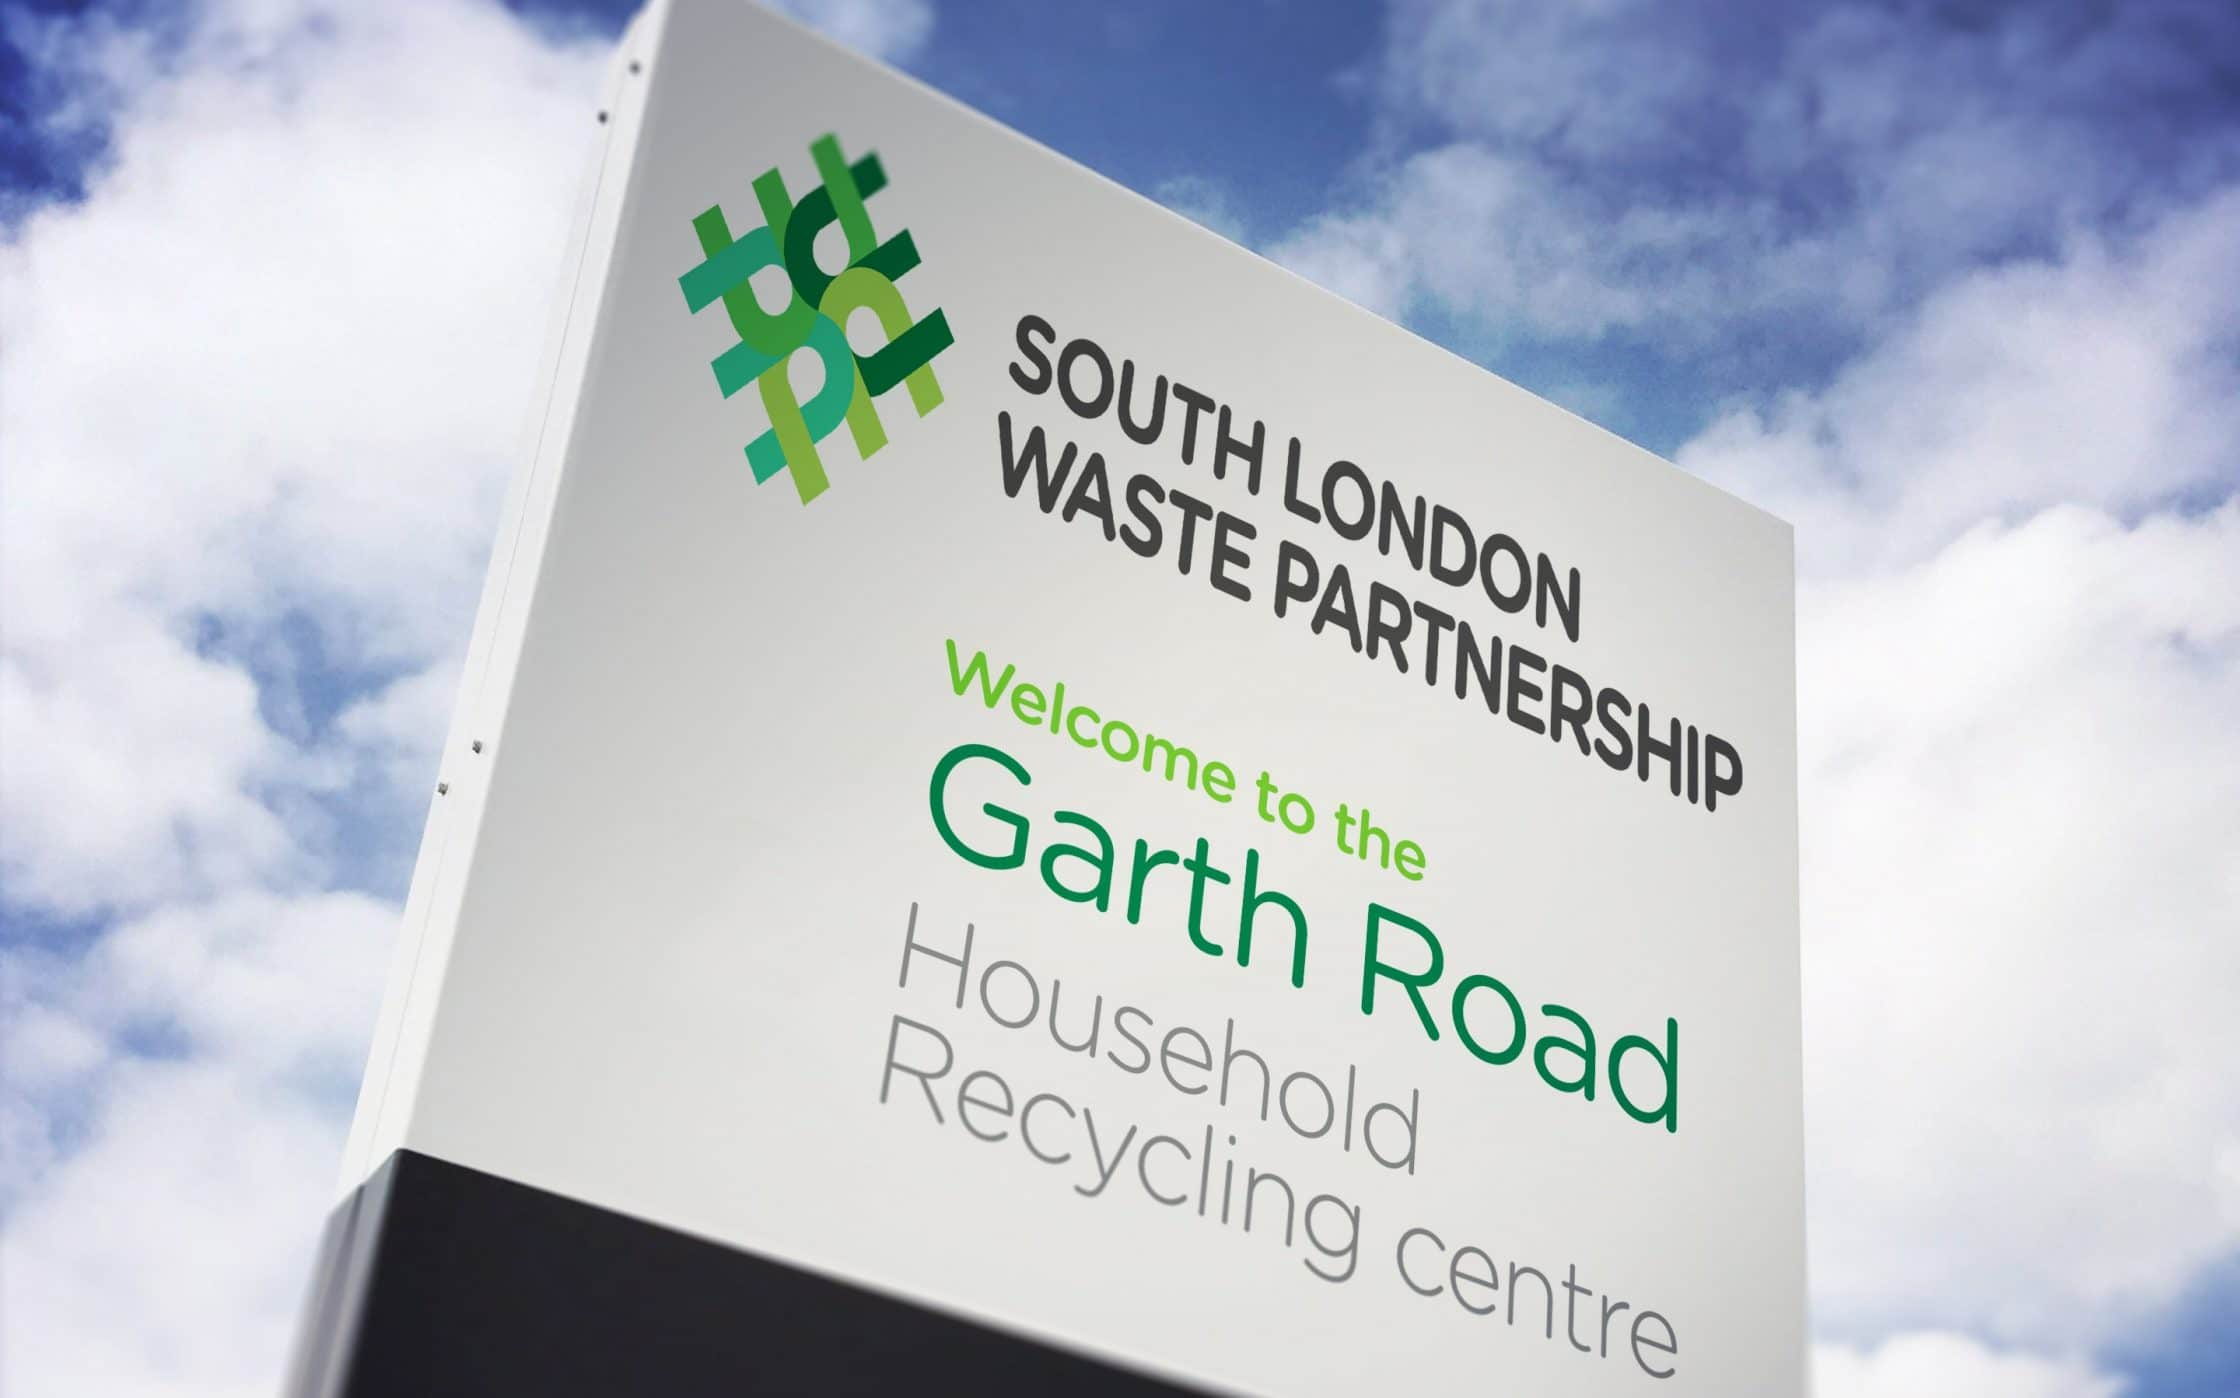 South London Waste